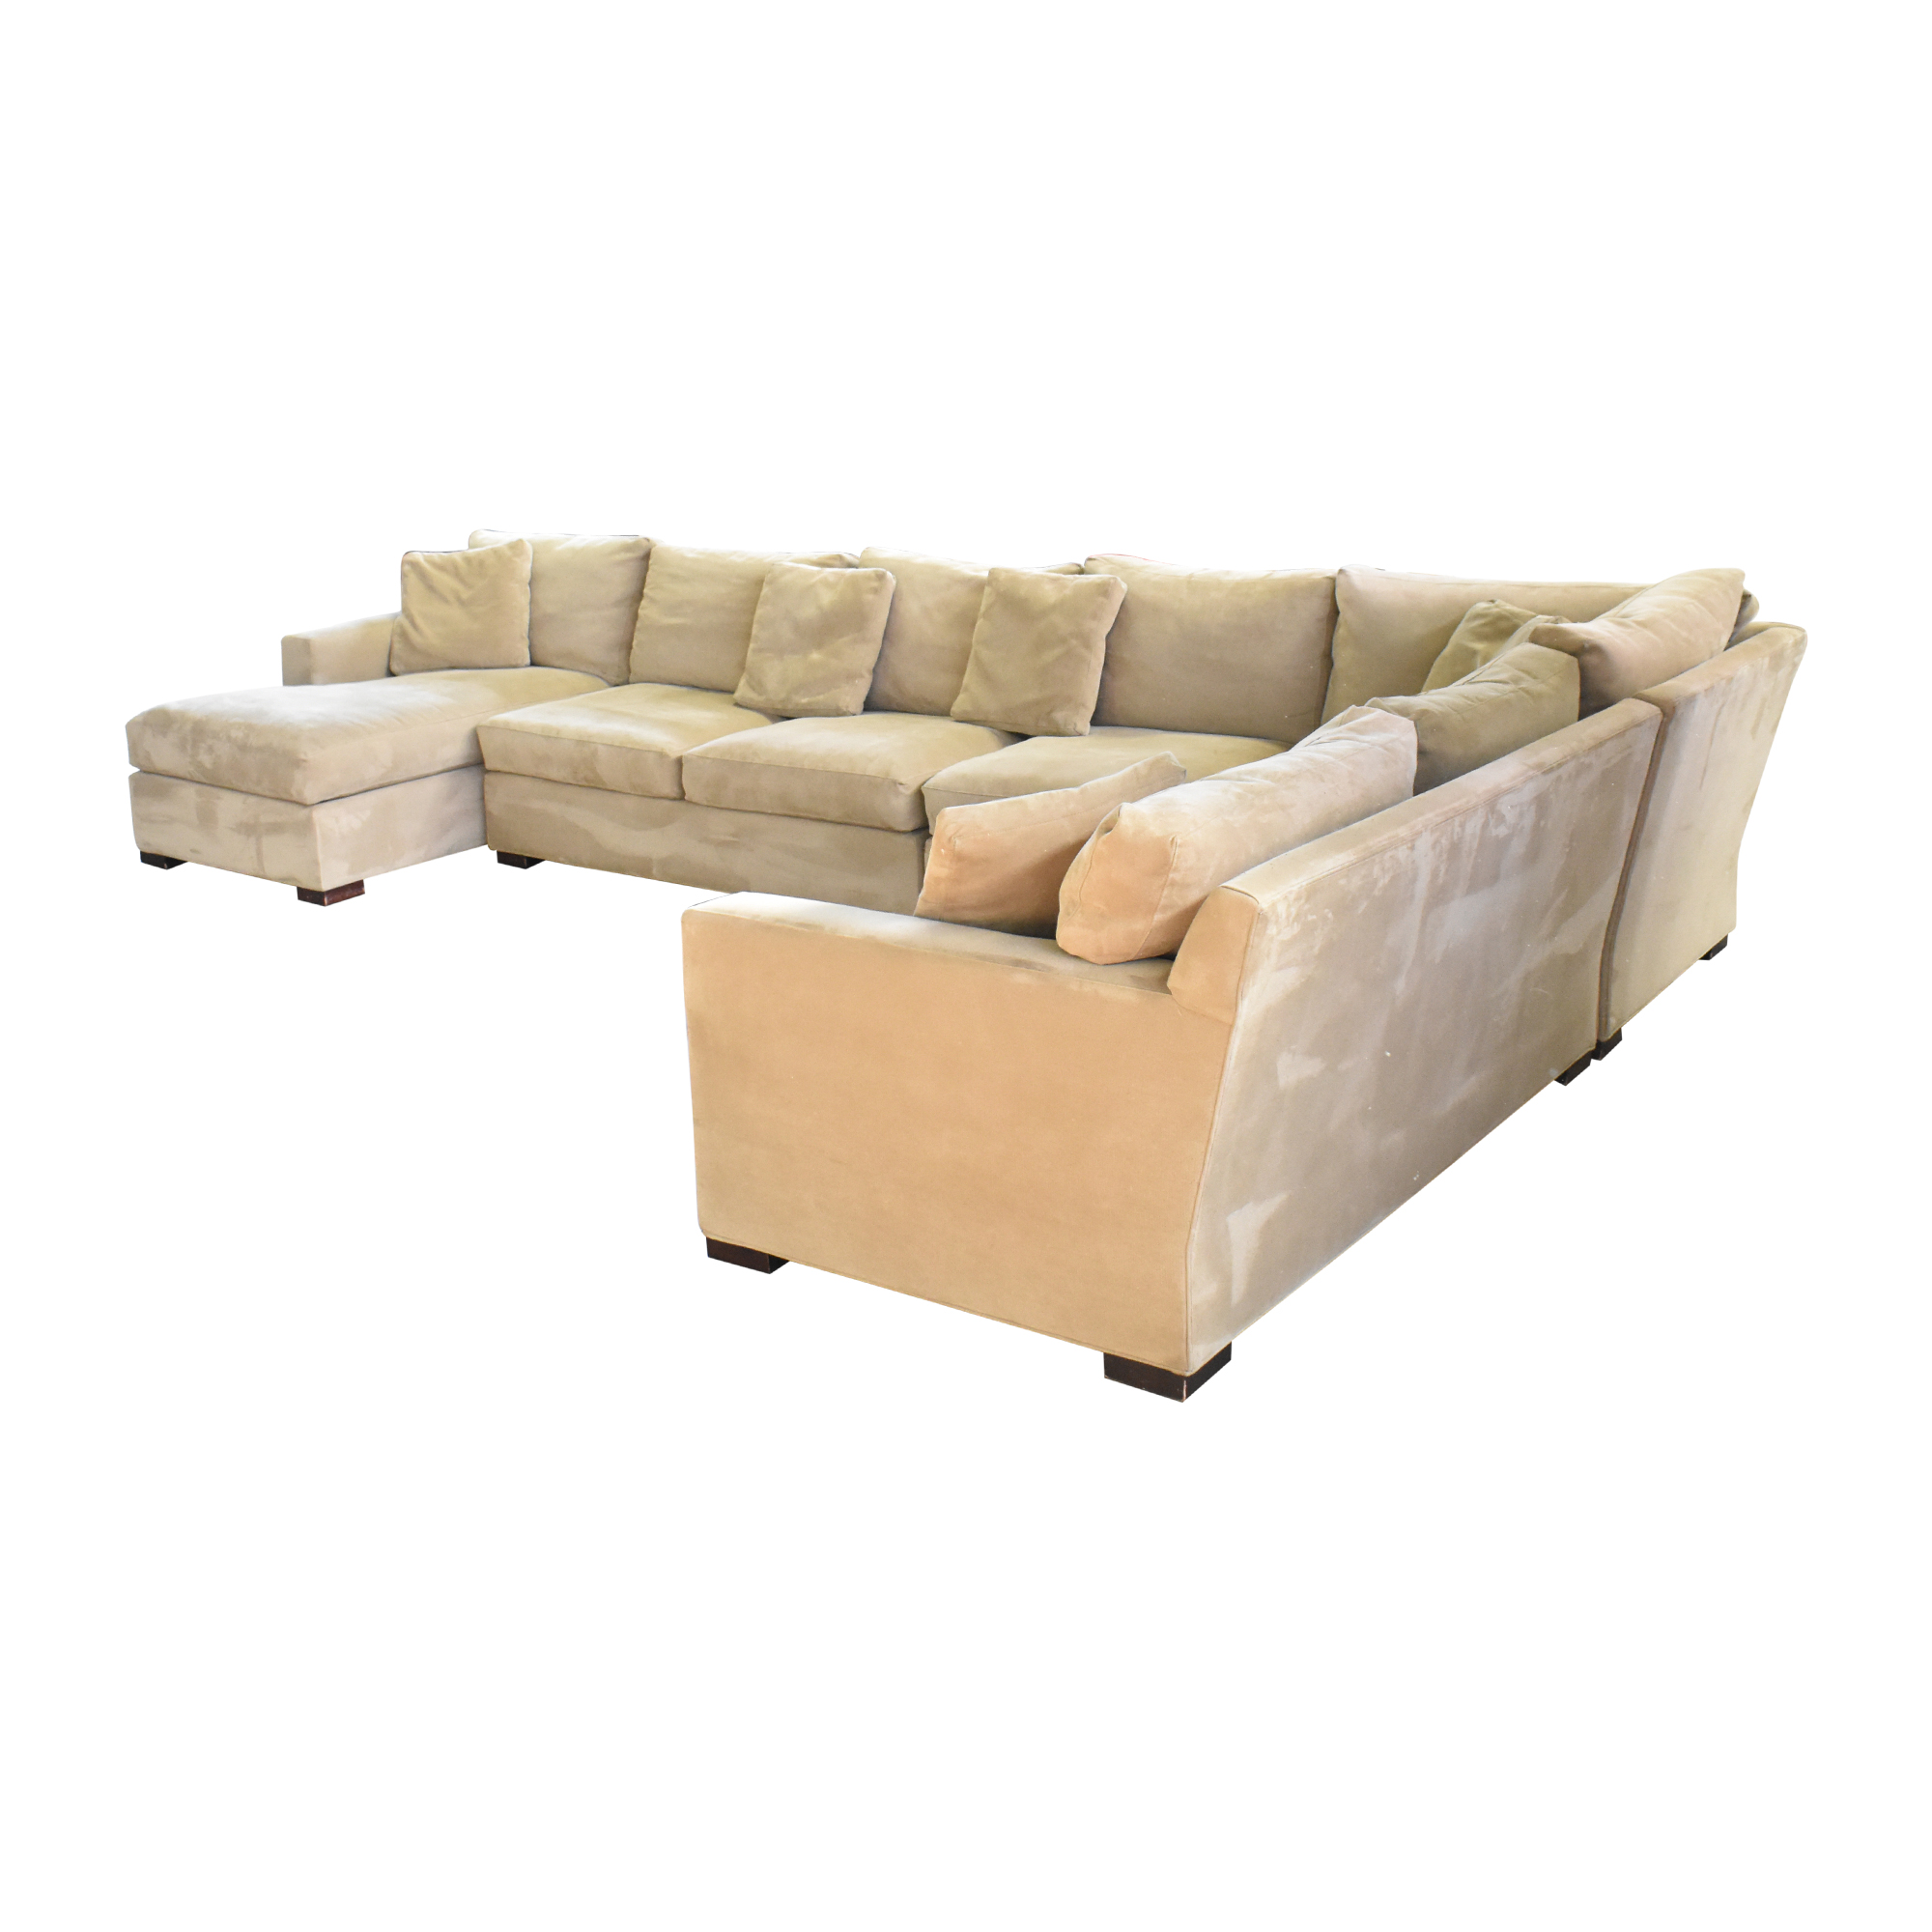 Crate & Barrel Crate & Barrel Axis Sectional Sofa with Chaise discount